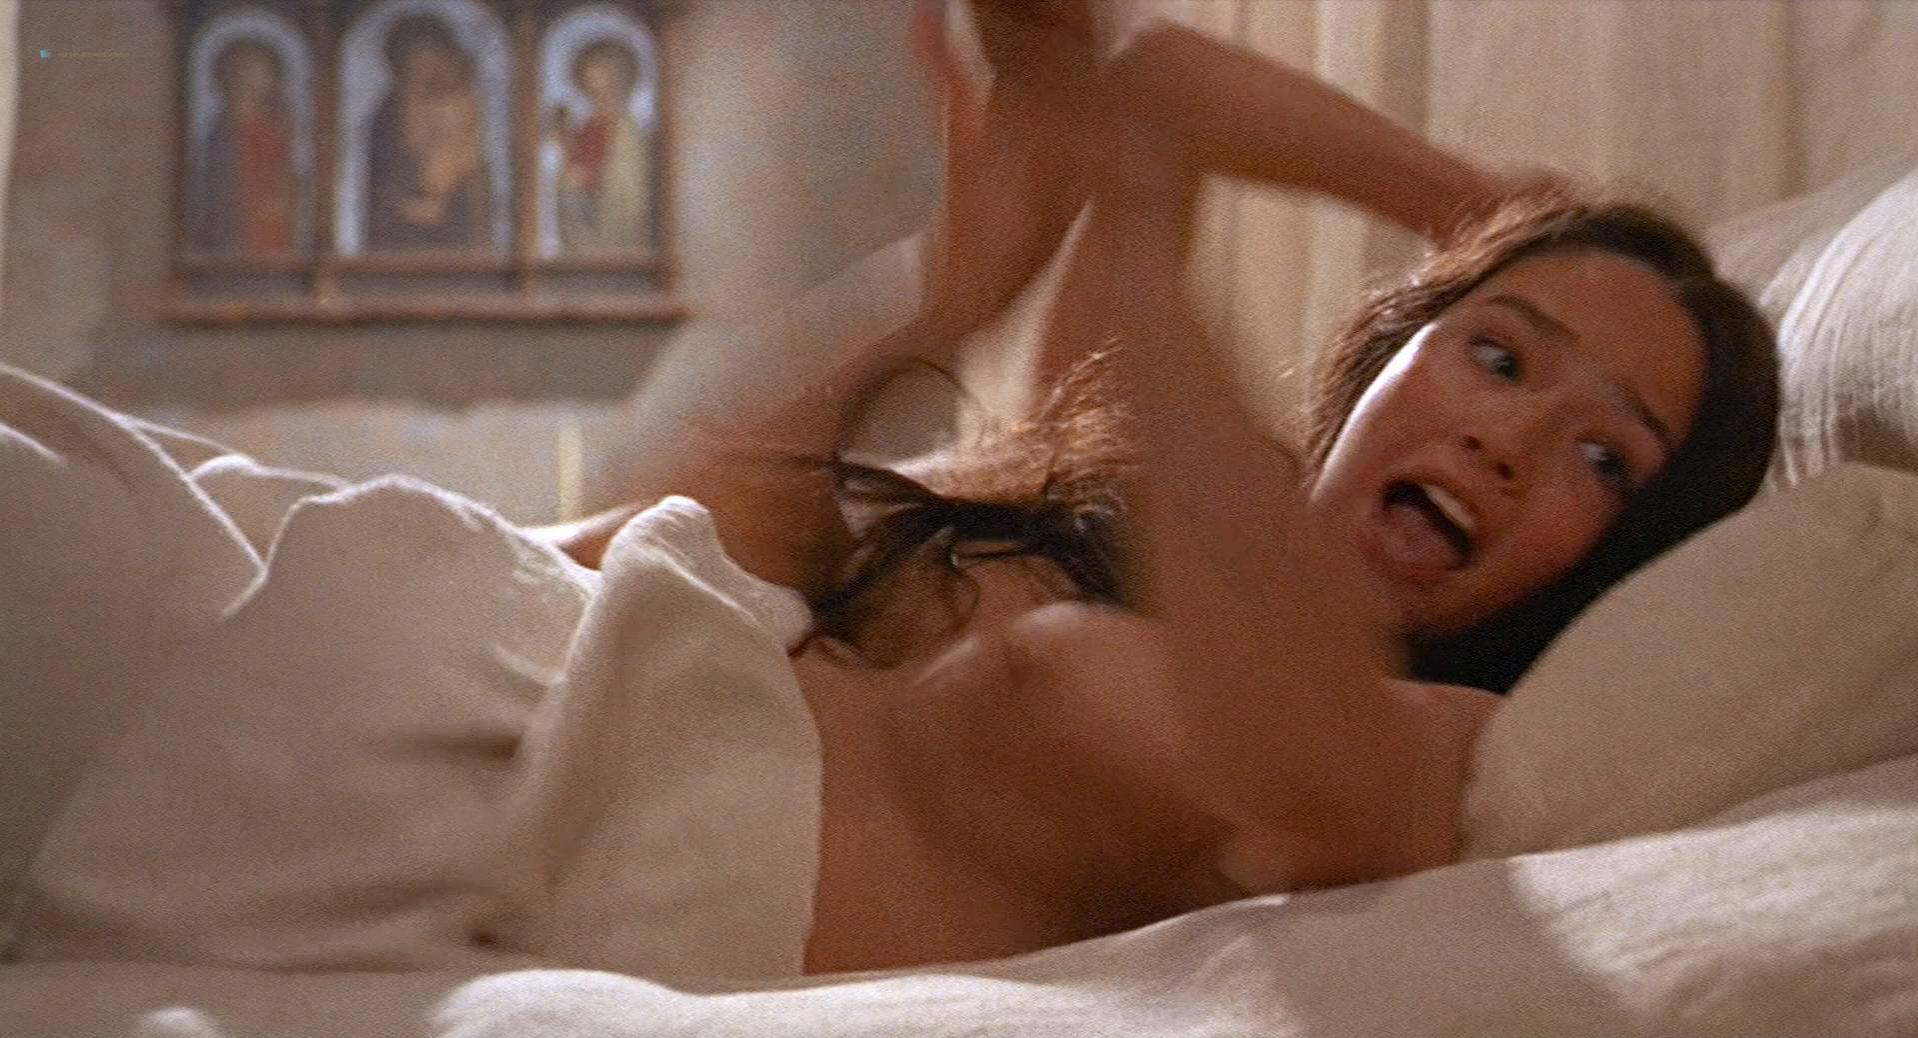 Remarkable, rather Nude sex scenes from indian movies